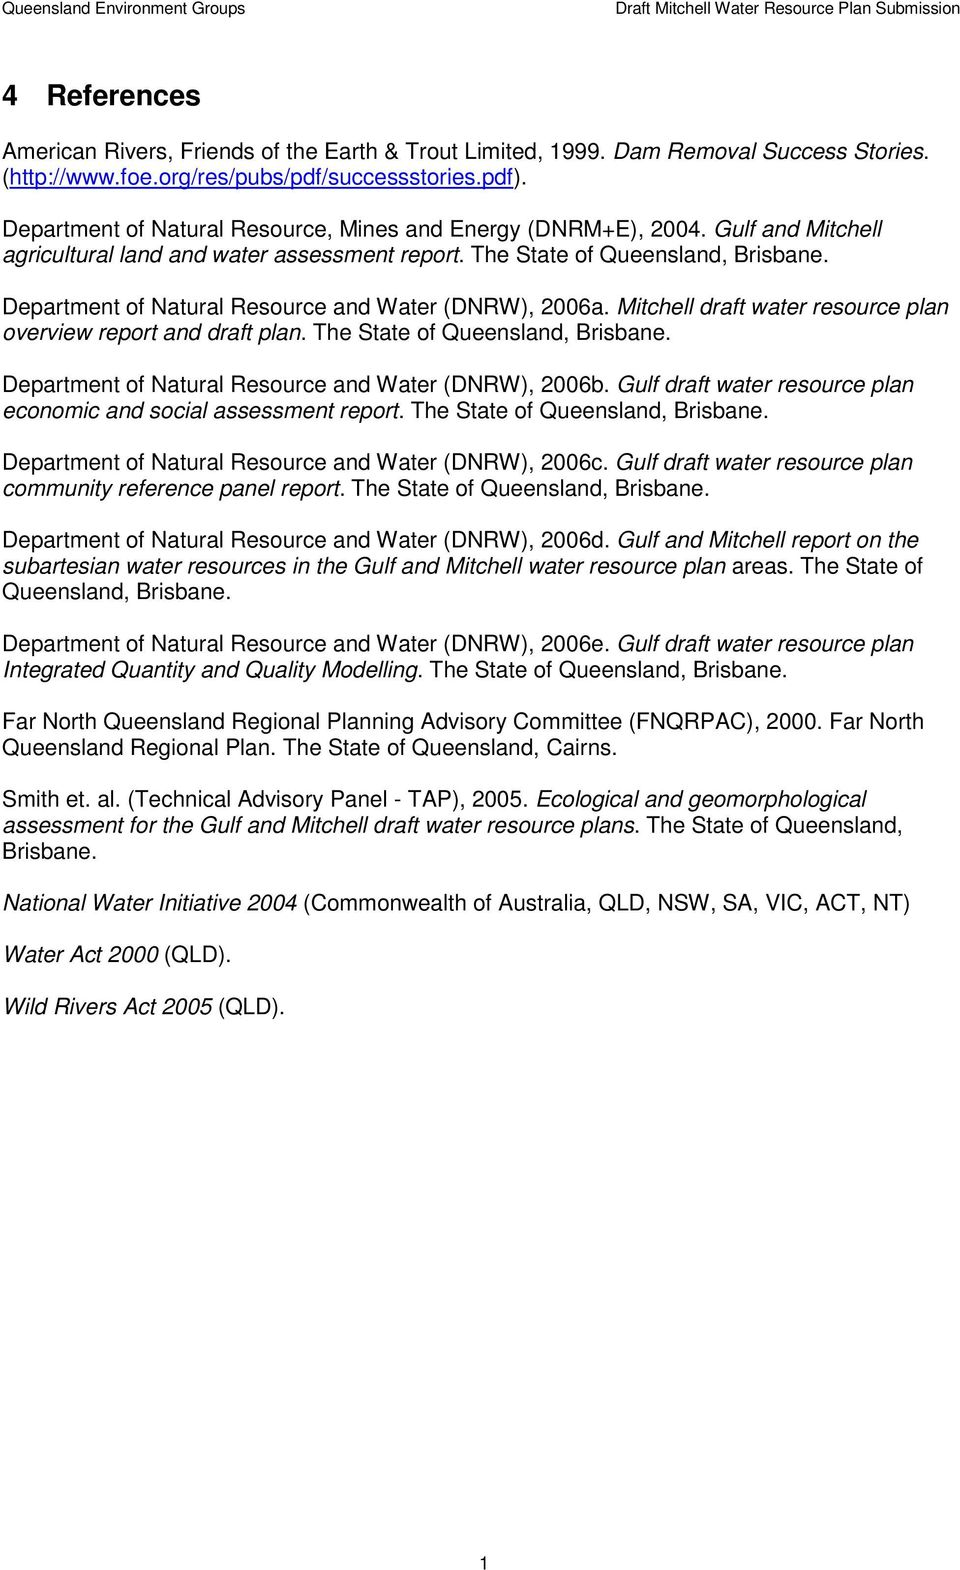 Department of Natural Resource and Water (DNRW), 2006a. Mitchell draft water resource plan overview report and draft plan. The State of Queensland, Brisbane.